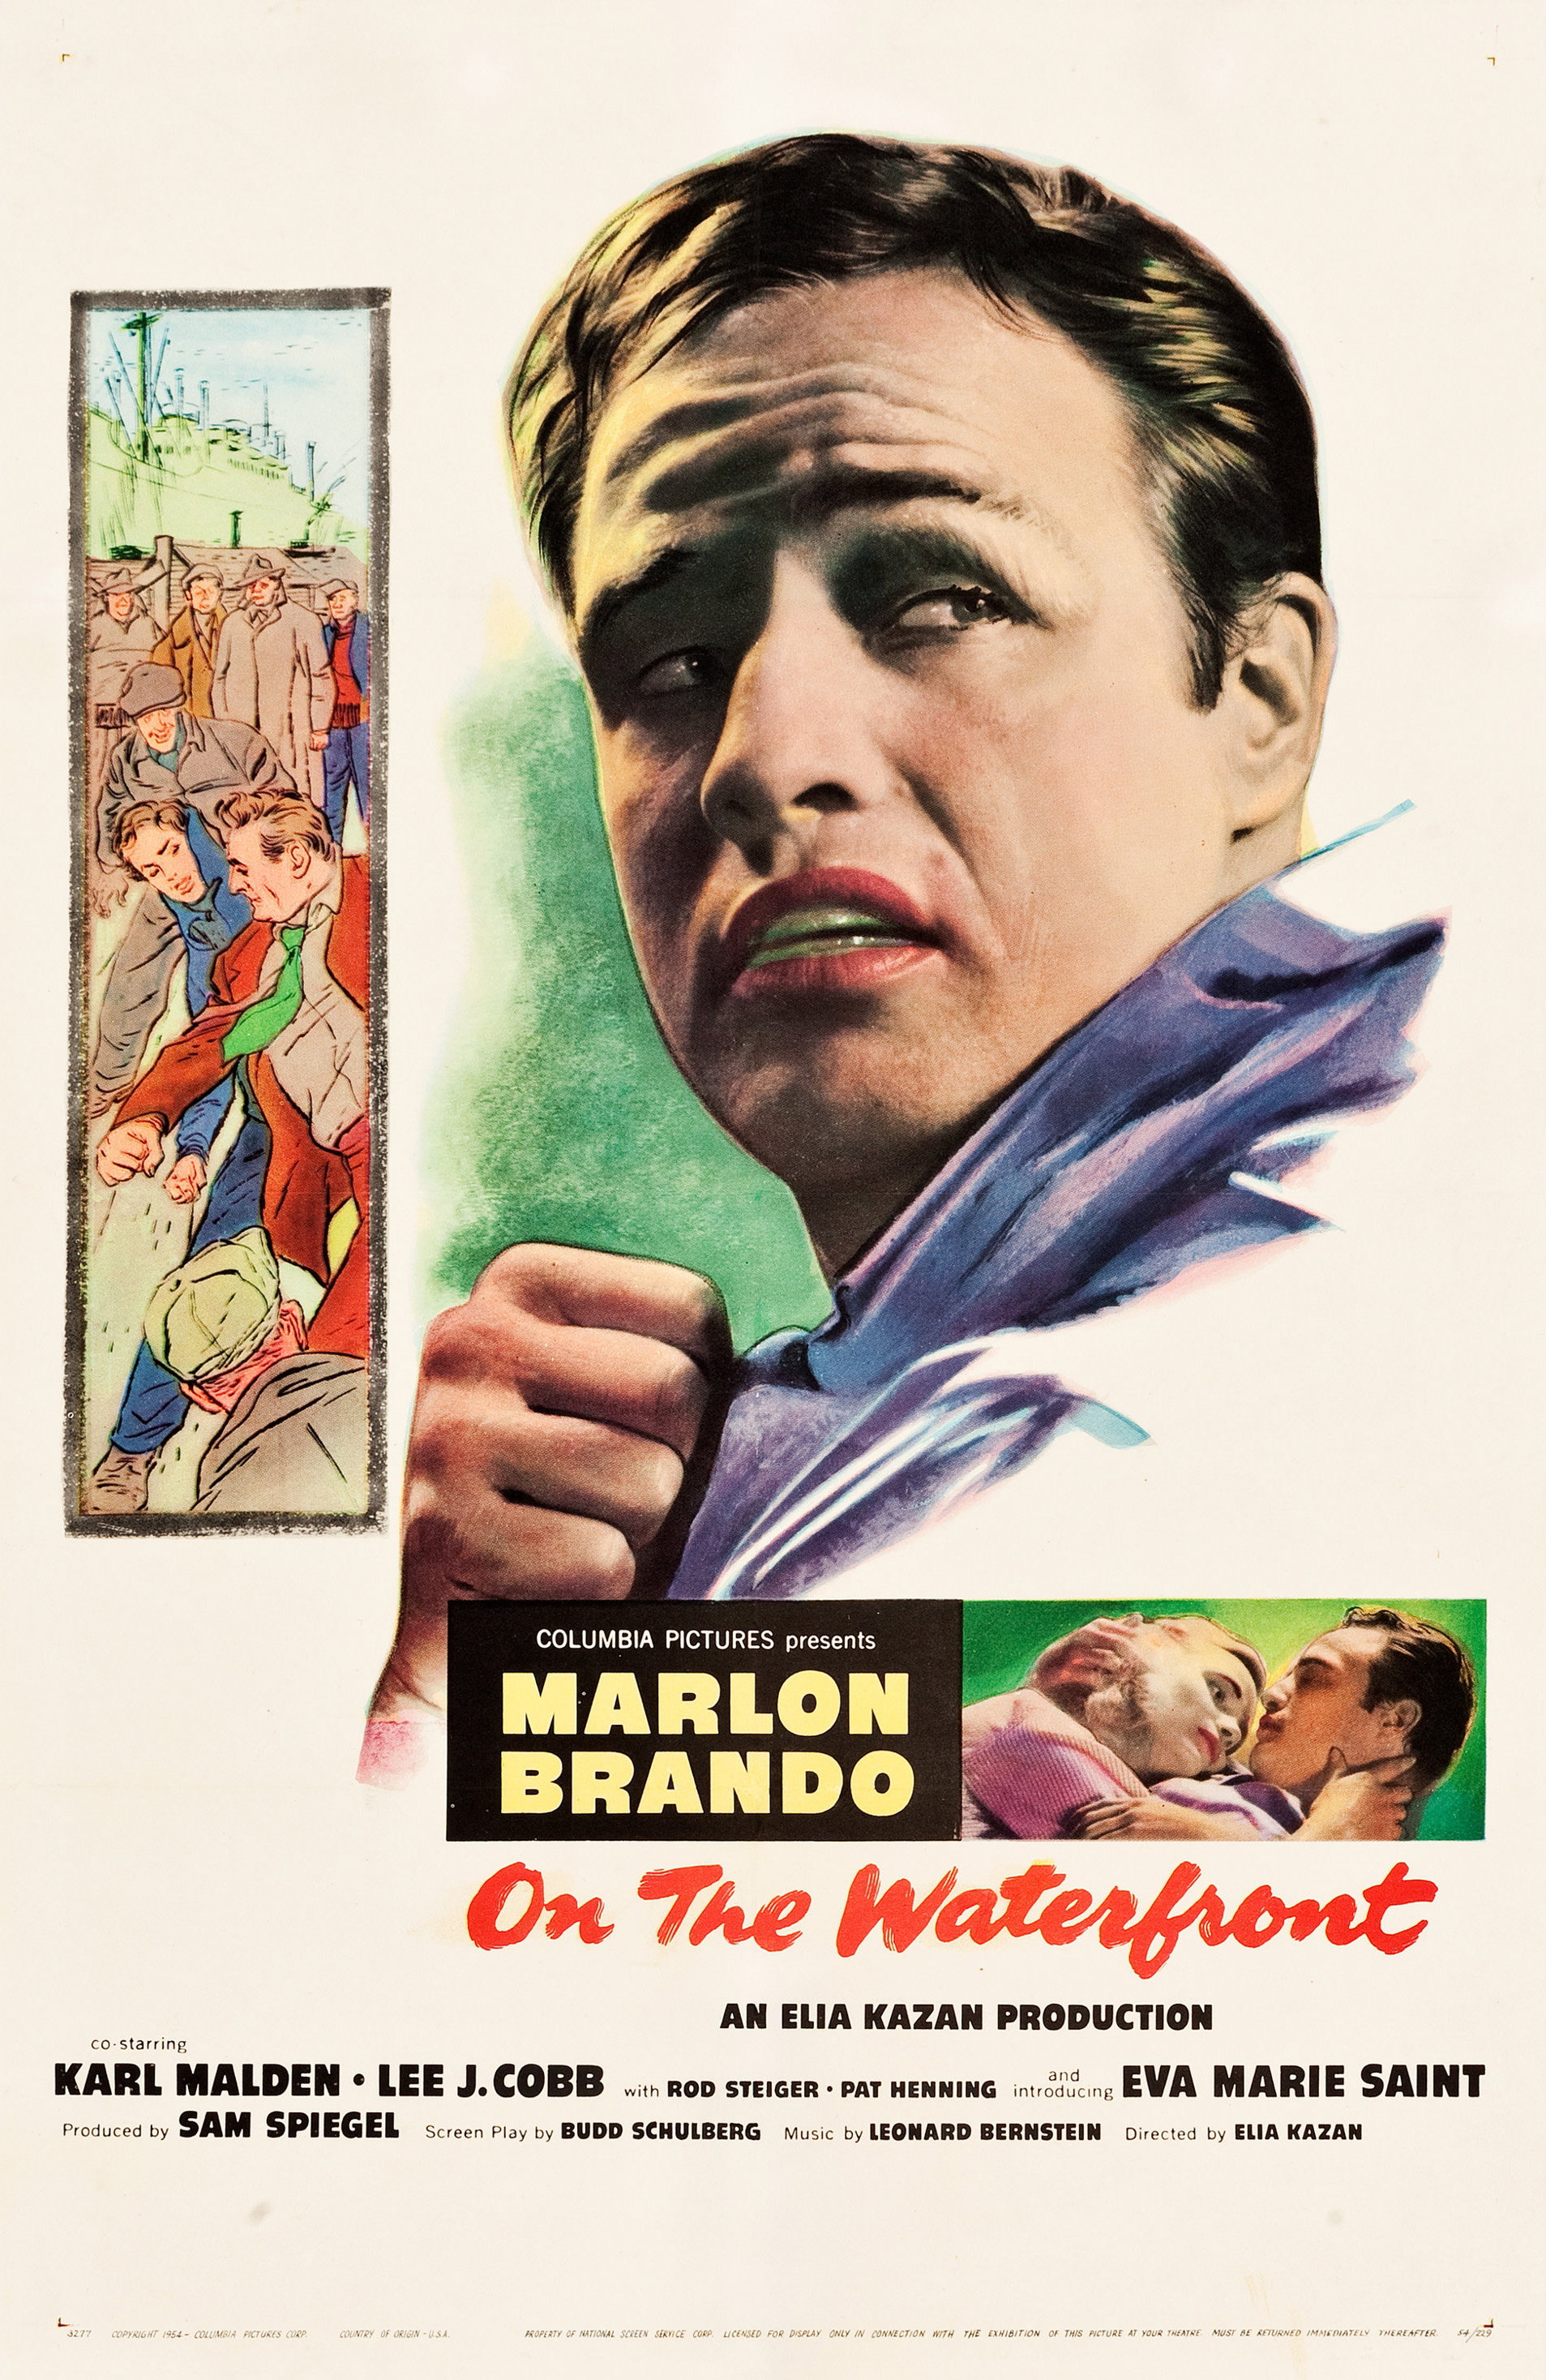 On the Waterfront - Wikipedia